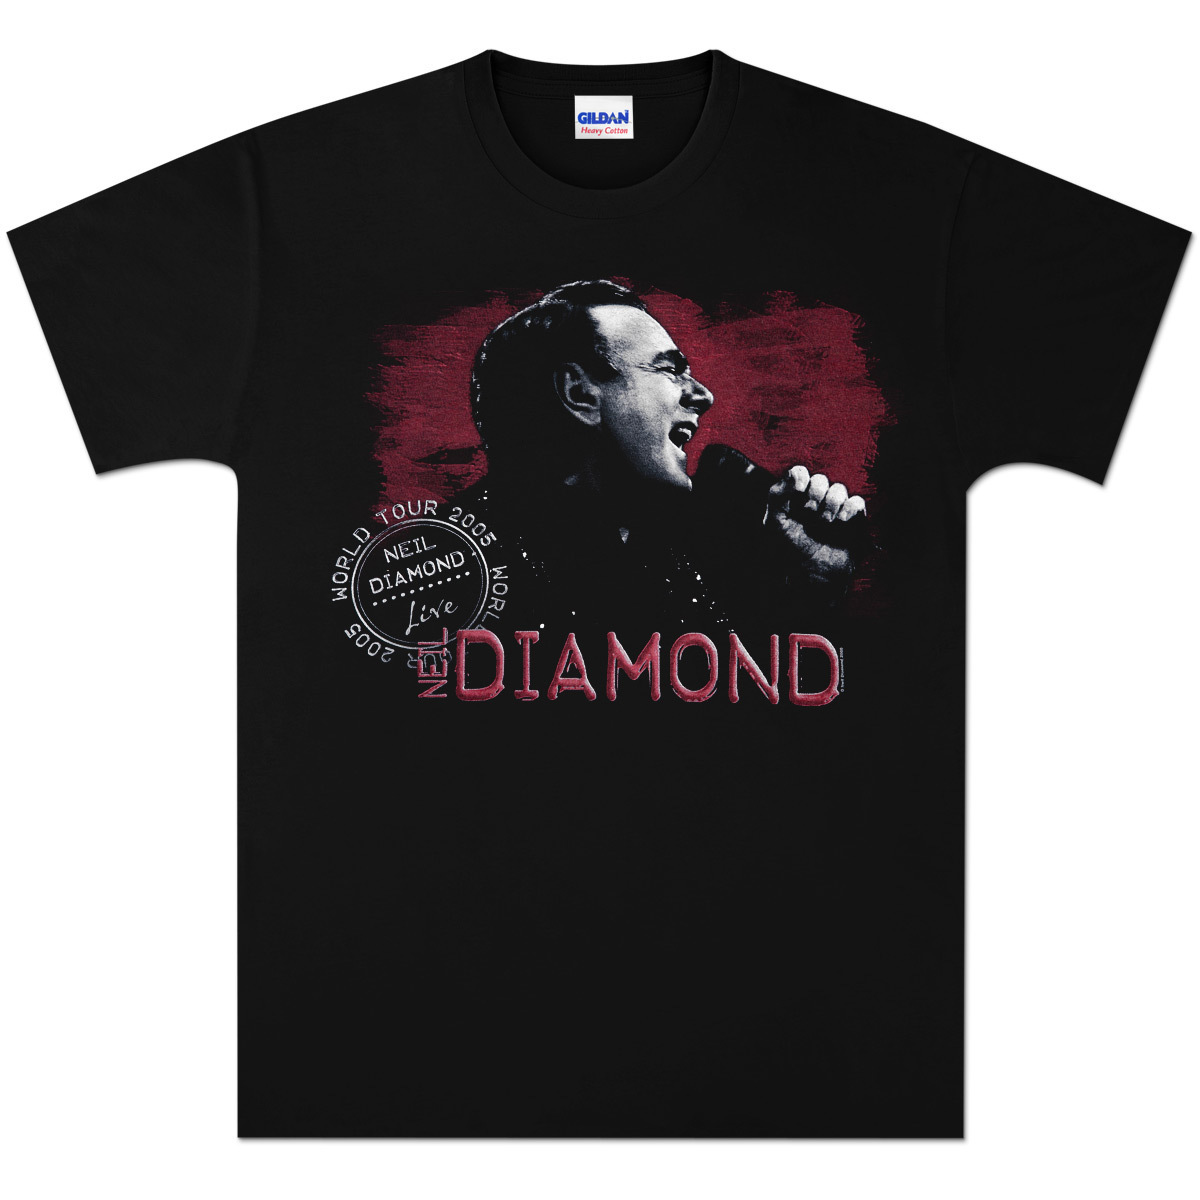 '05 World Tour Live Red Shade Tee